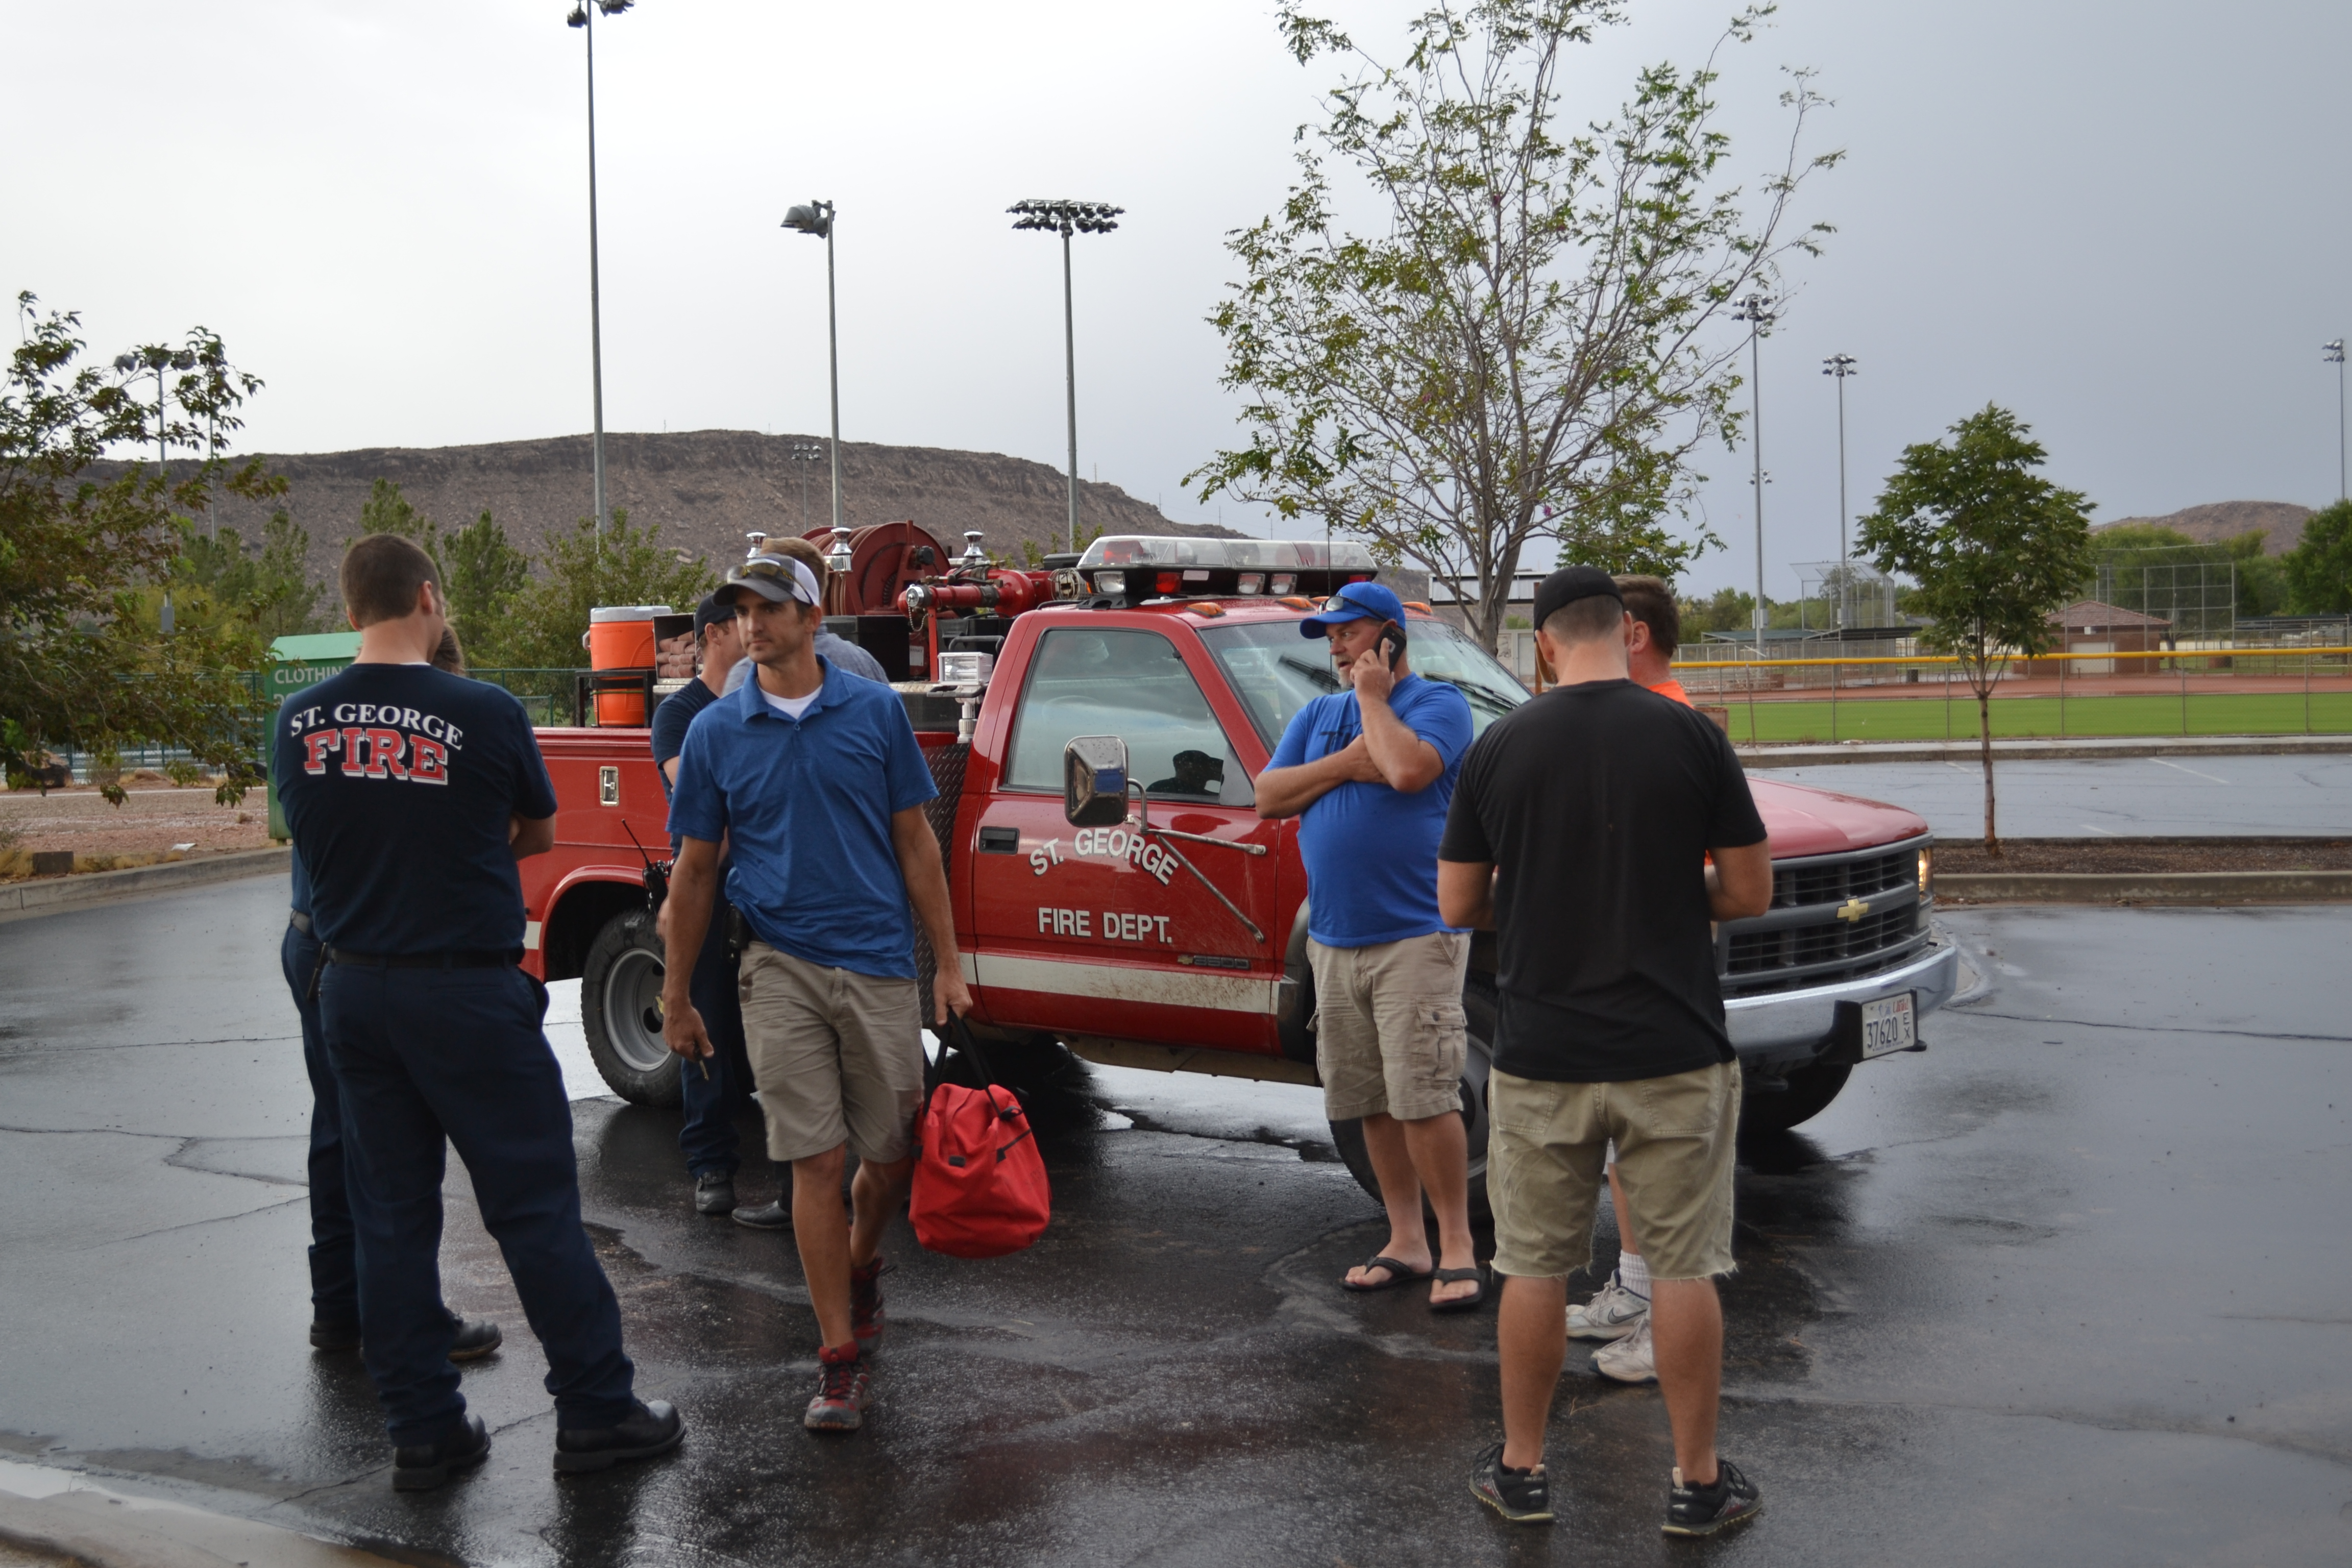 St. George Fire emergency respond after an unidentified man was reported to have fallen from a kayak into the Virgin River, St. George, Utah, Sept. 22, 2016 | Photo by Joseph Witham, St. George News